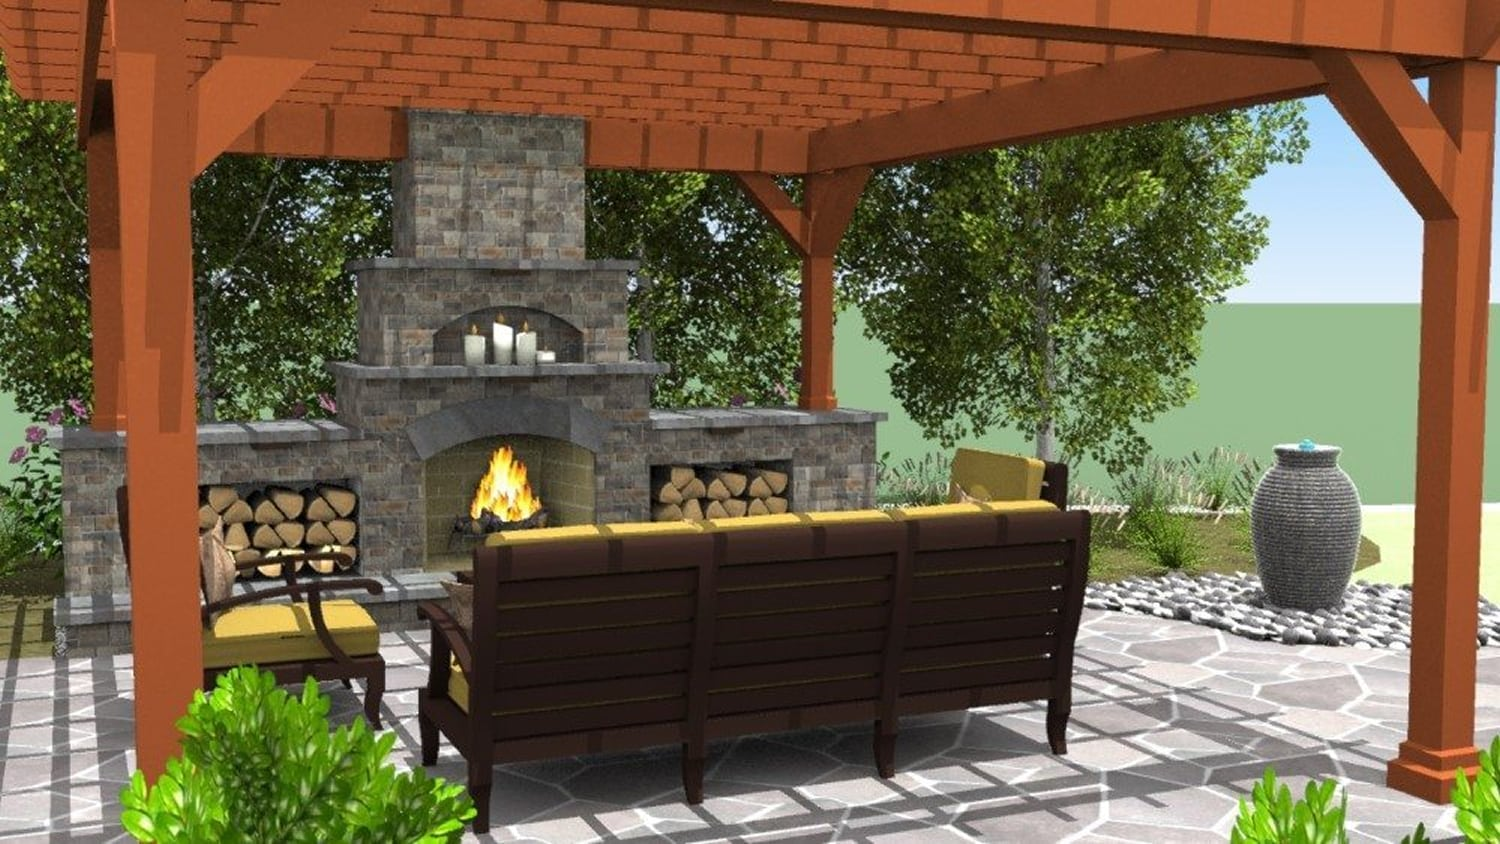 3-D Landscape Design Plan of Patio wth Fireplace, Seating, and Pergola